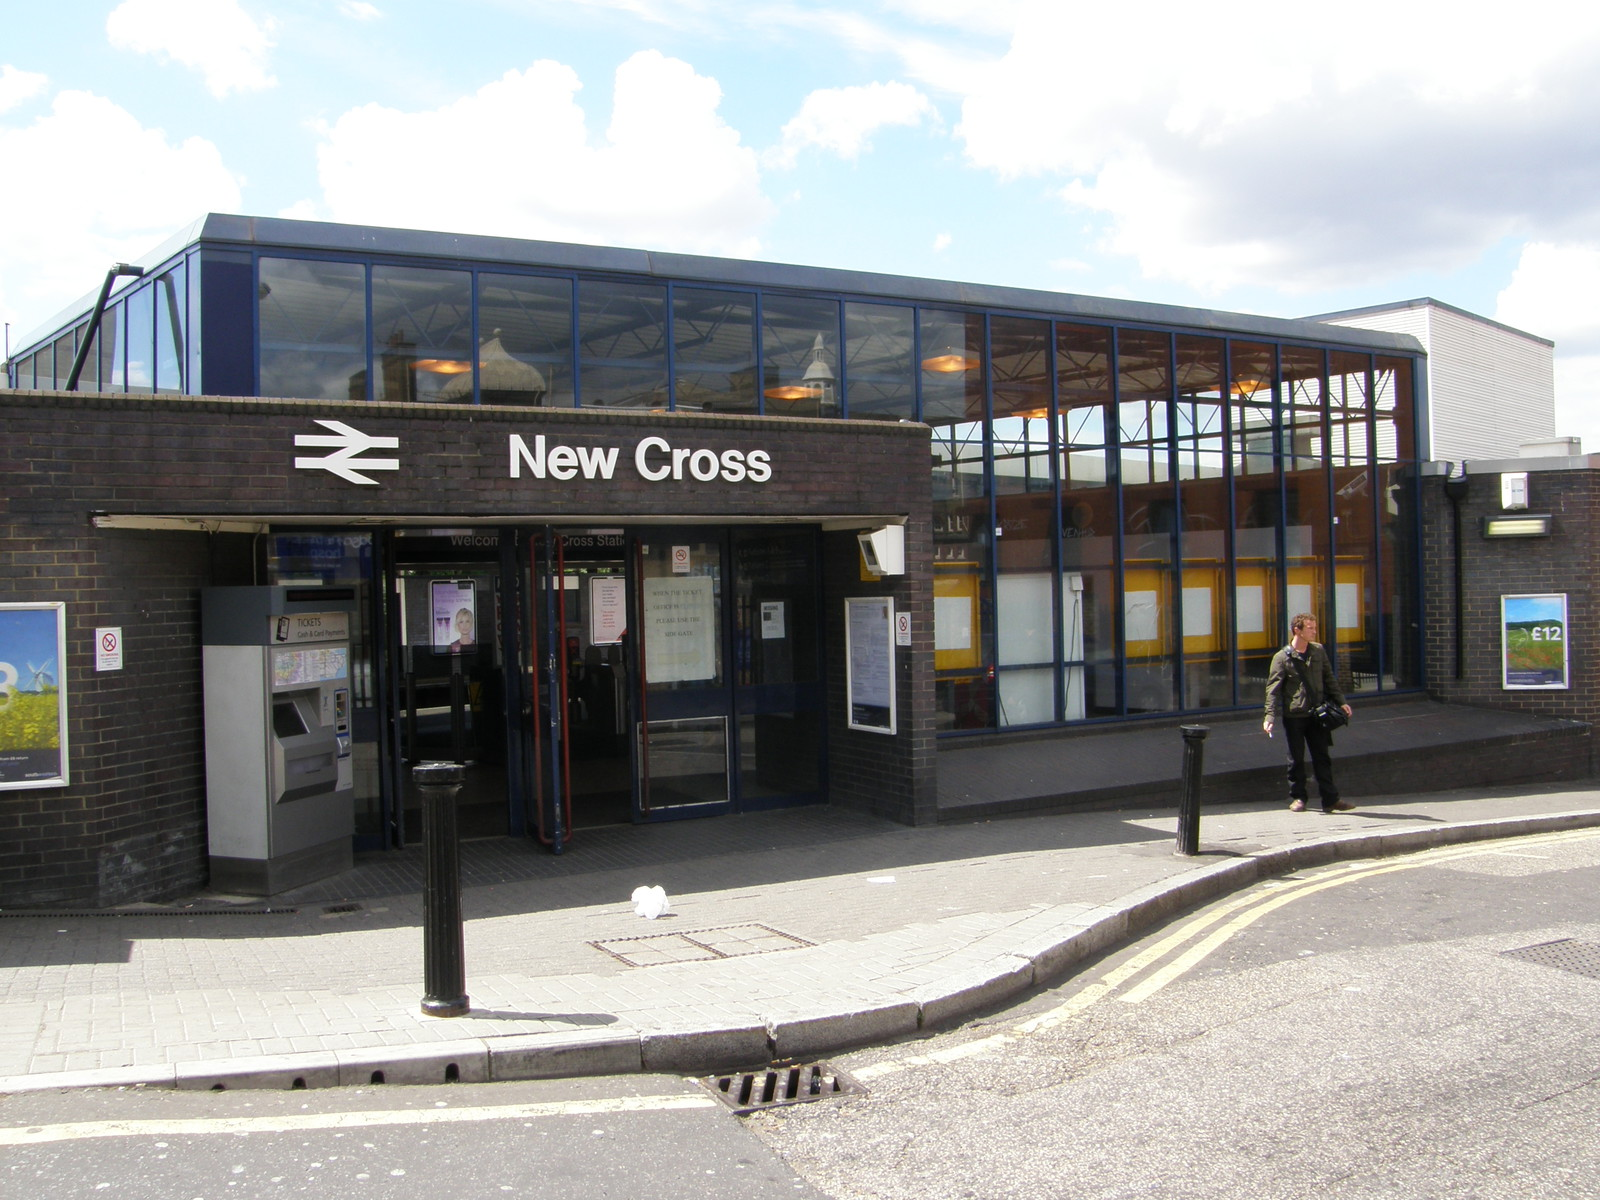 New Cross station